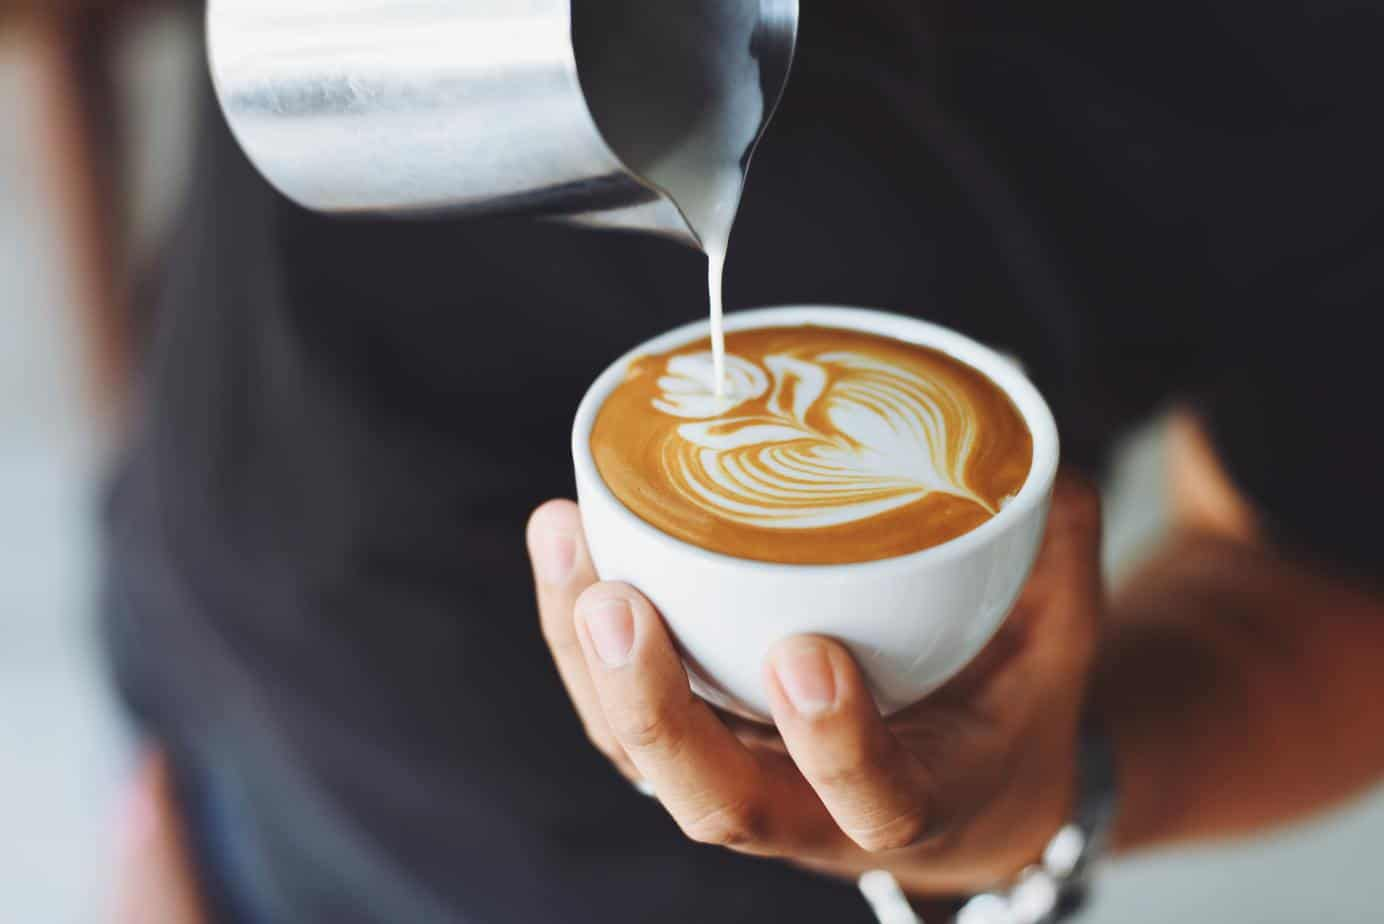 latte art on the perfect cup of coffee